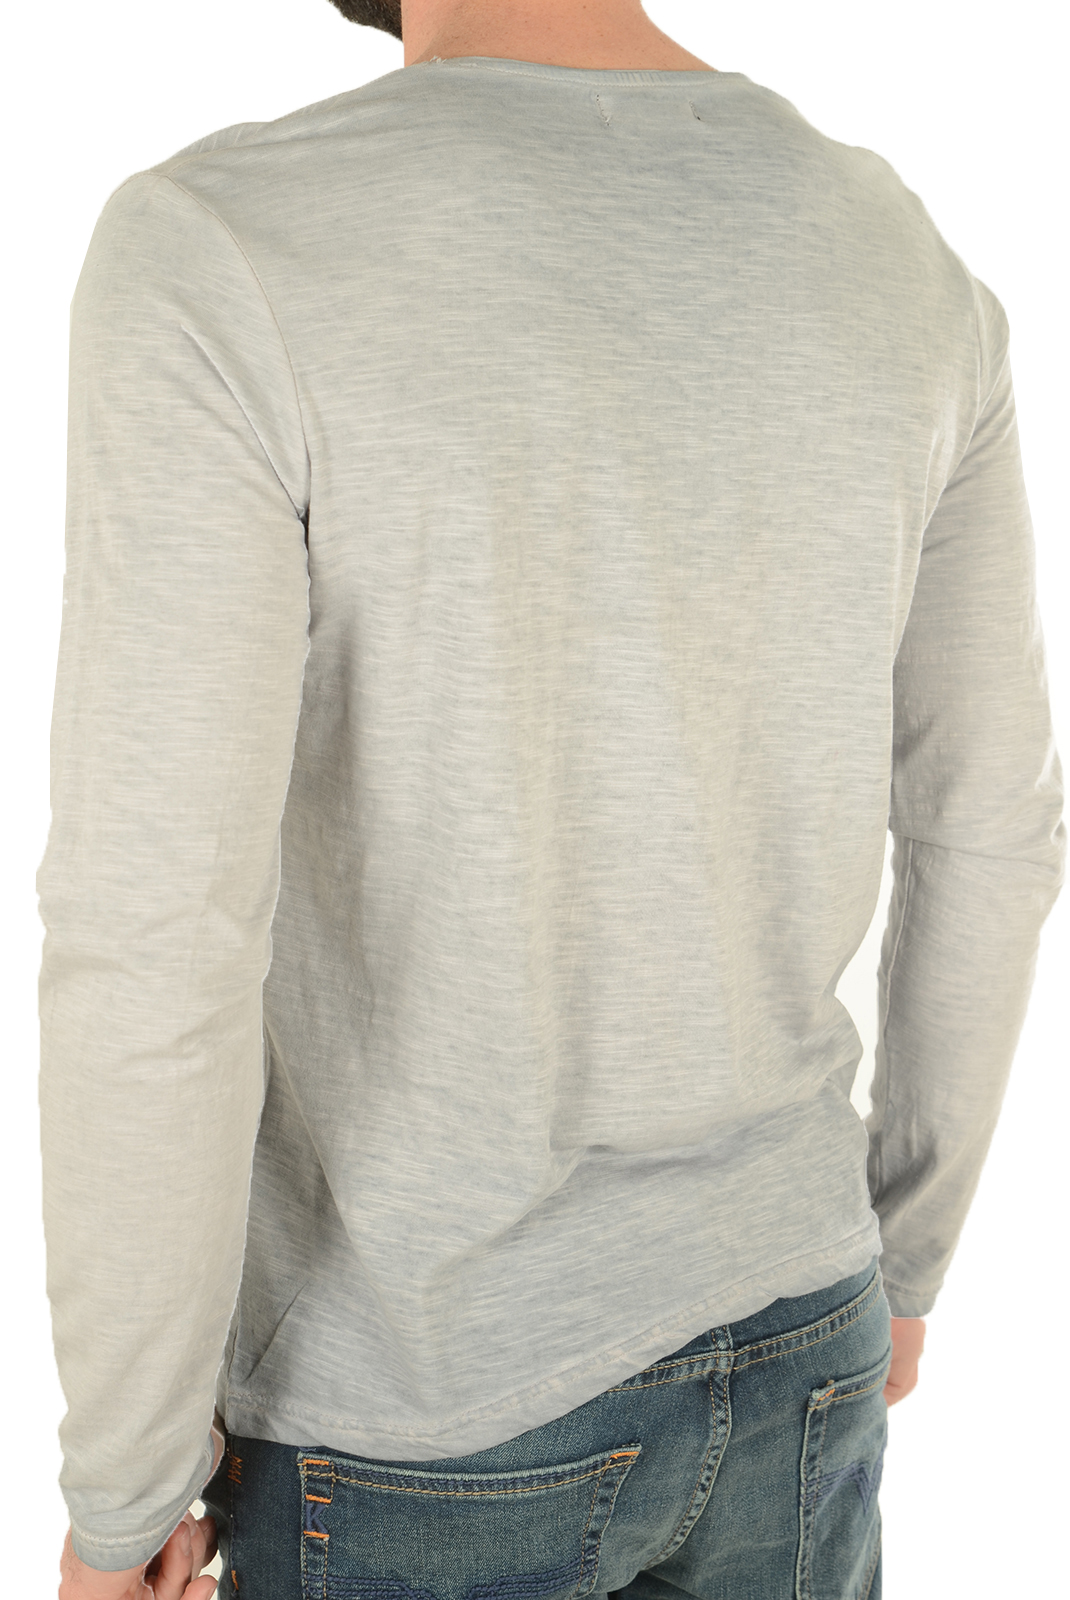 Tee-shirts manches longues  Biaggio jeans LEPALIL LT GREY